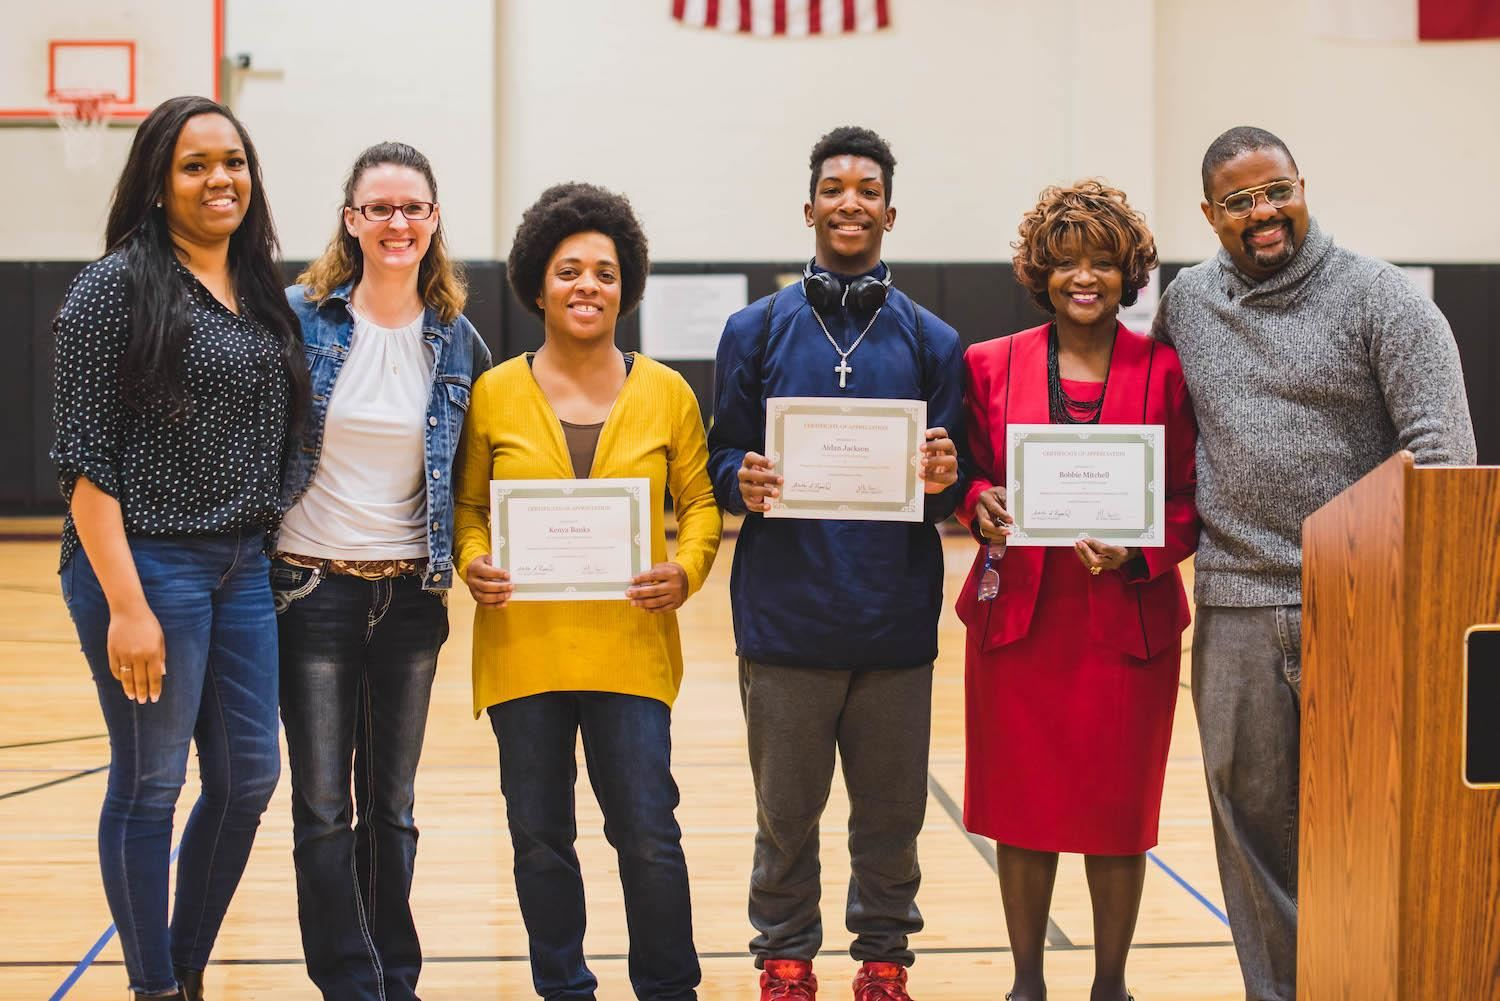 Groups smiles with certificates at Black History Month celebration